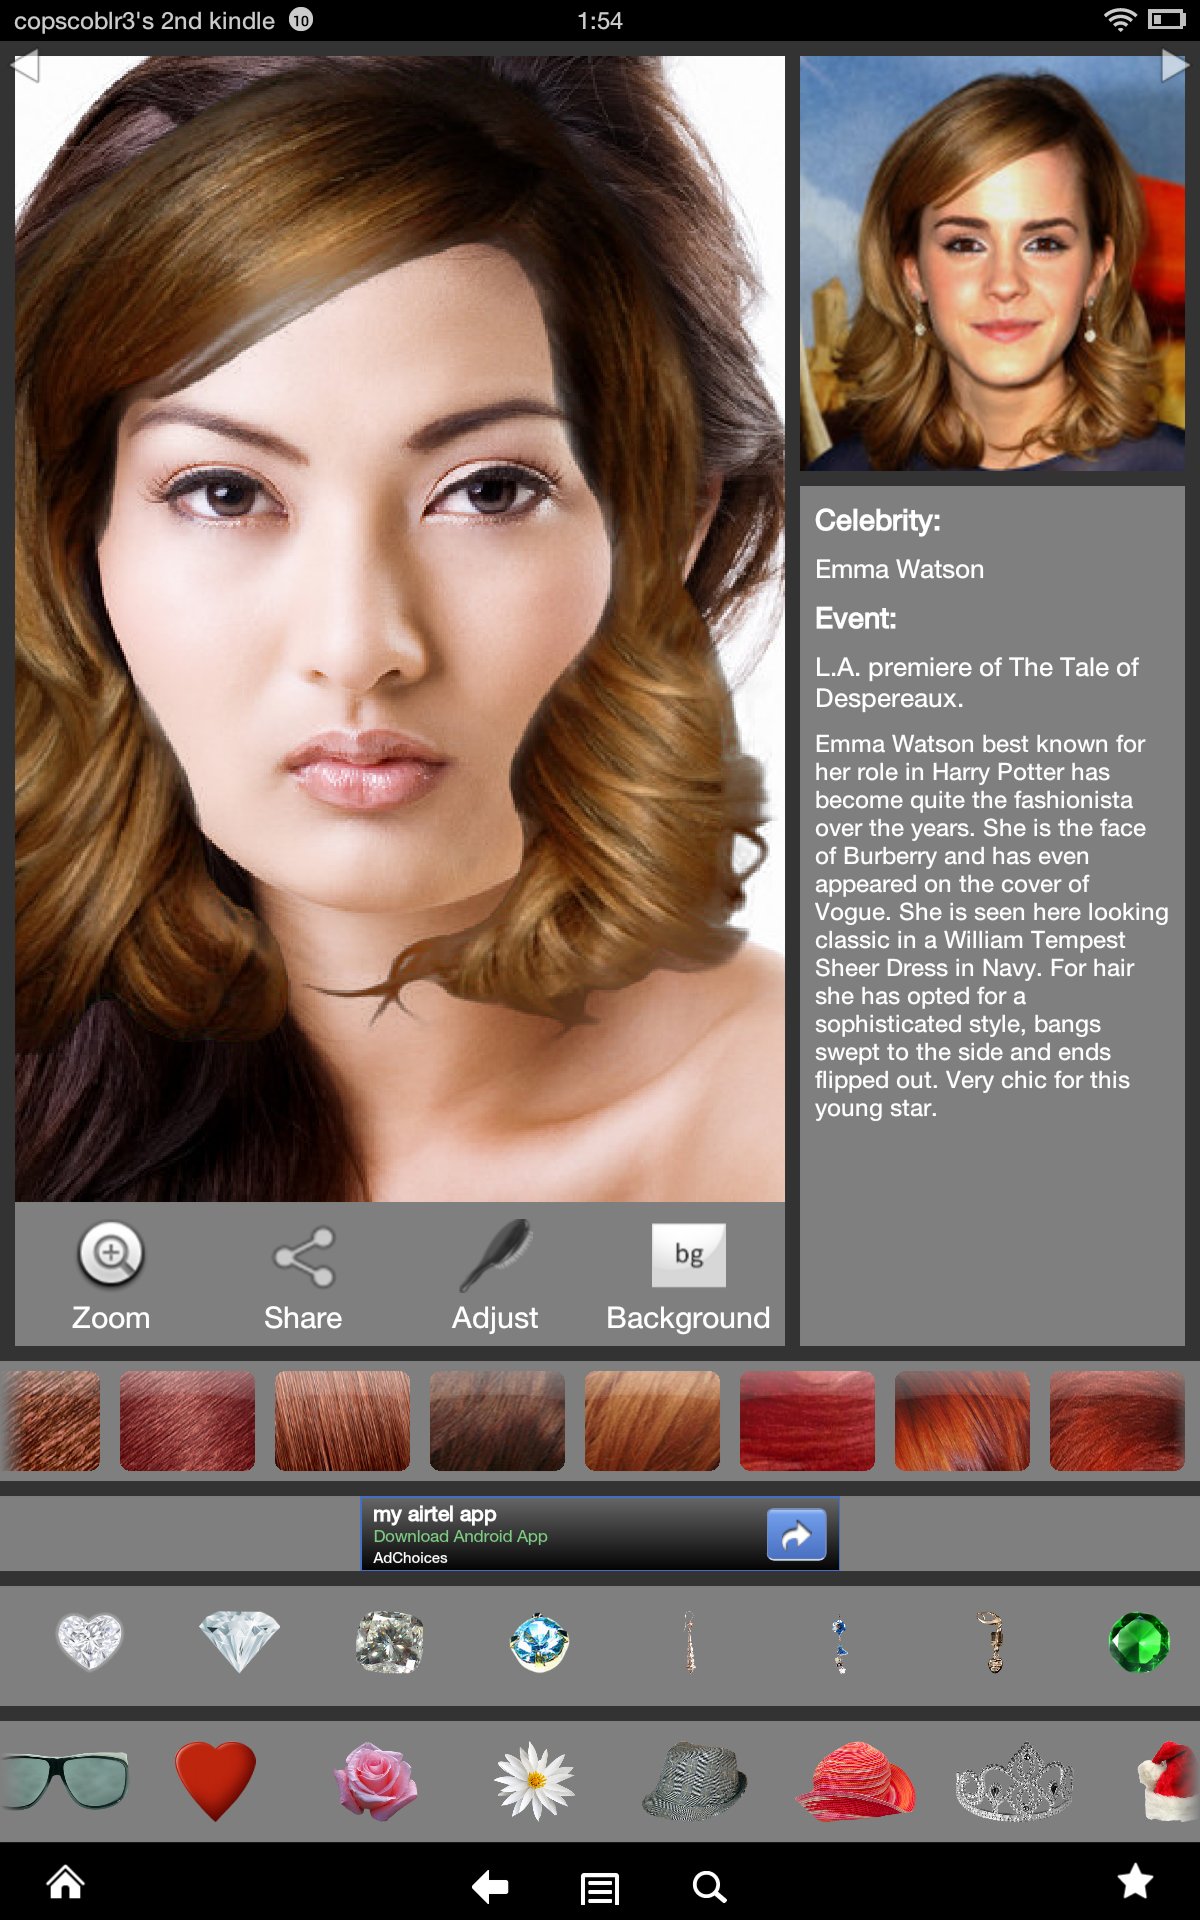 Ultimate Hairstyle Try-On: Amazon.de: Apps für Android